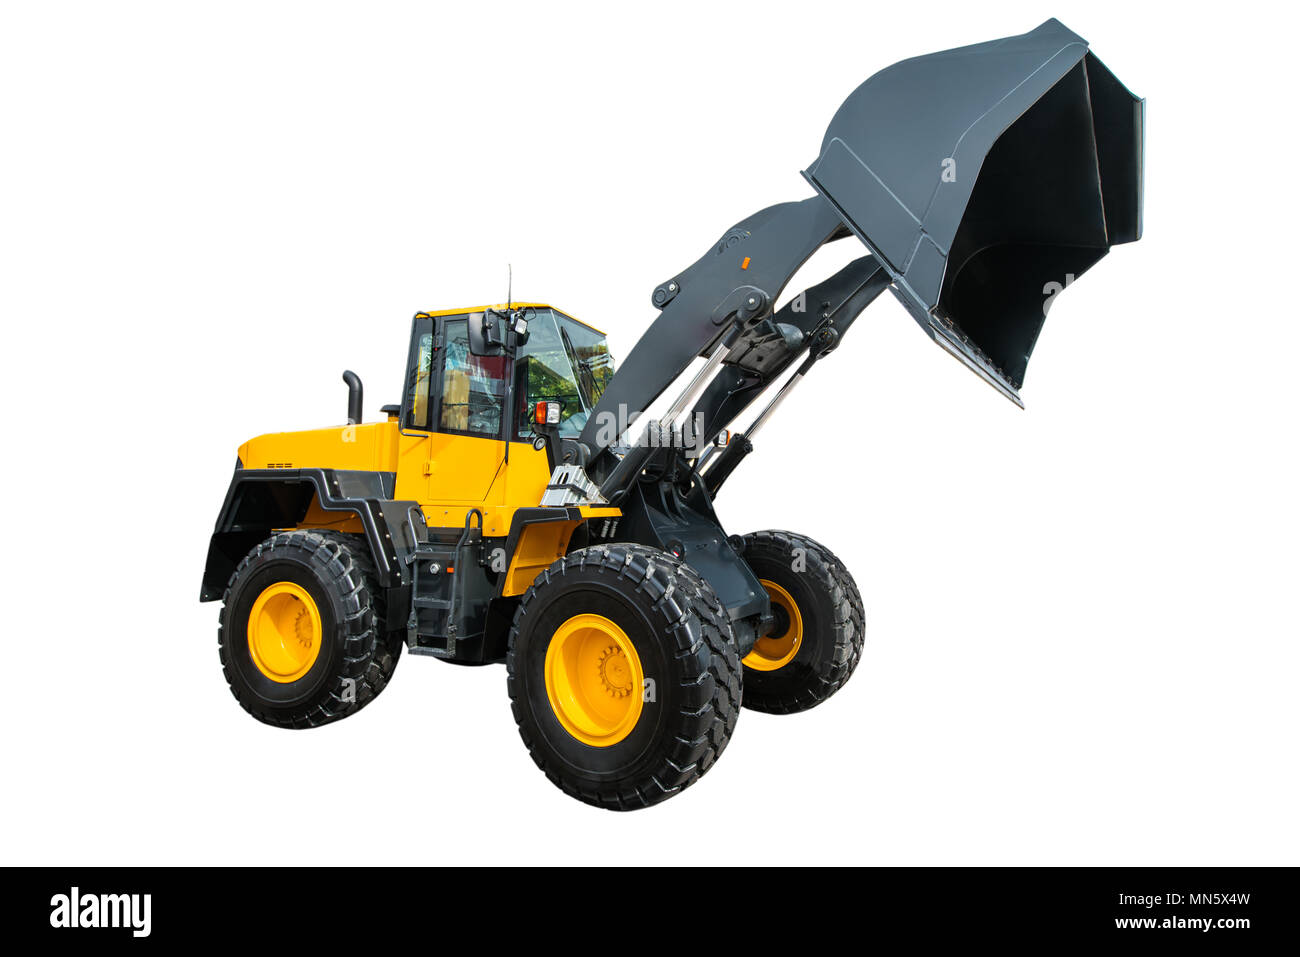 Loader or Bulldozer excavator, isolated on white background with clipping path. - Stock Image